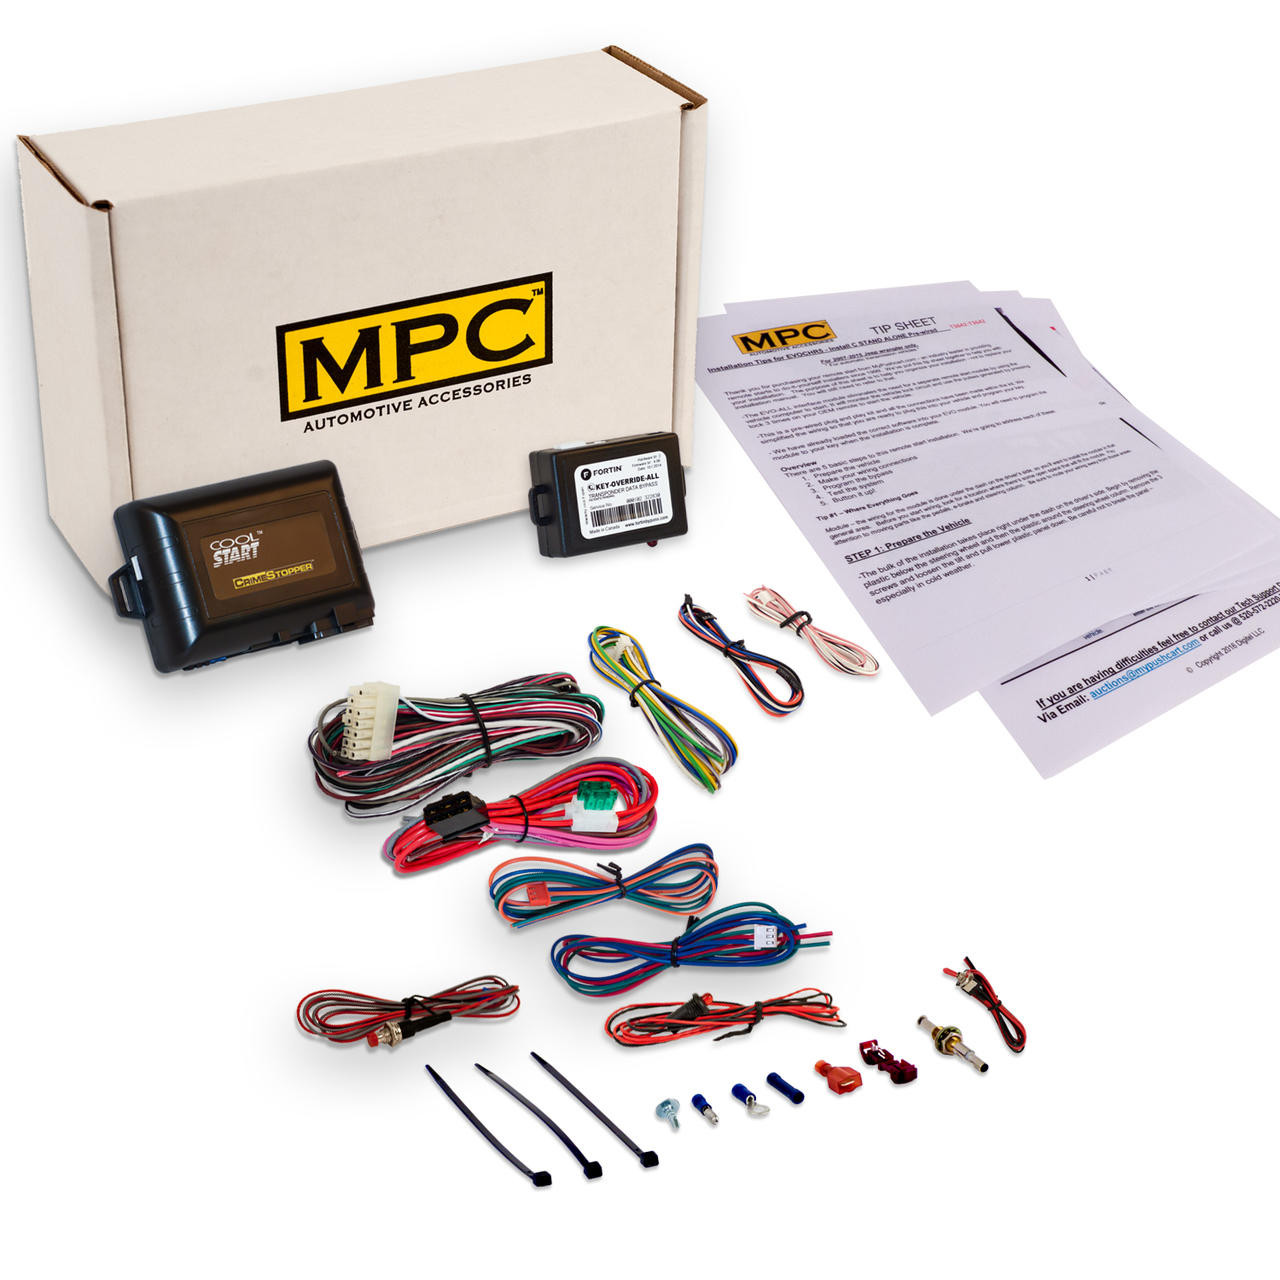 MPC Toyota Solara 1999-2003 Add On Remote Start Kit Fits - Use OEM Fobs To Activate